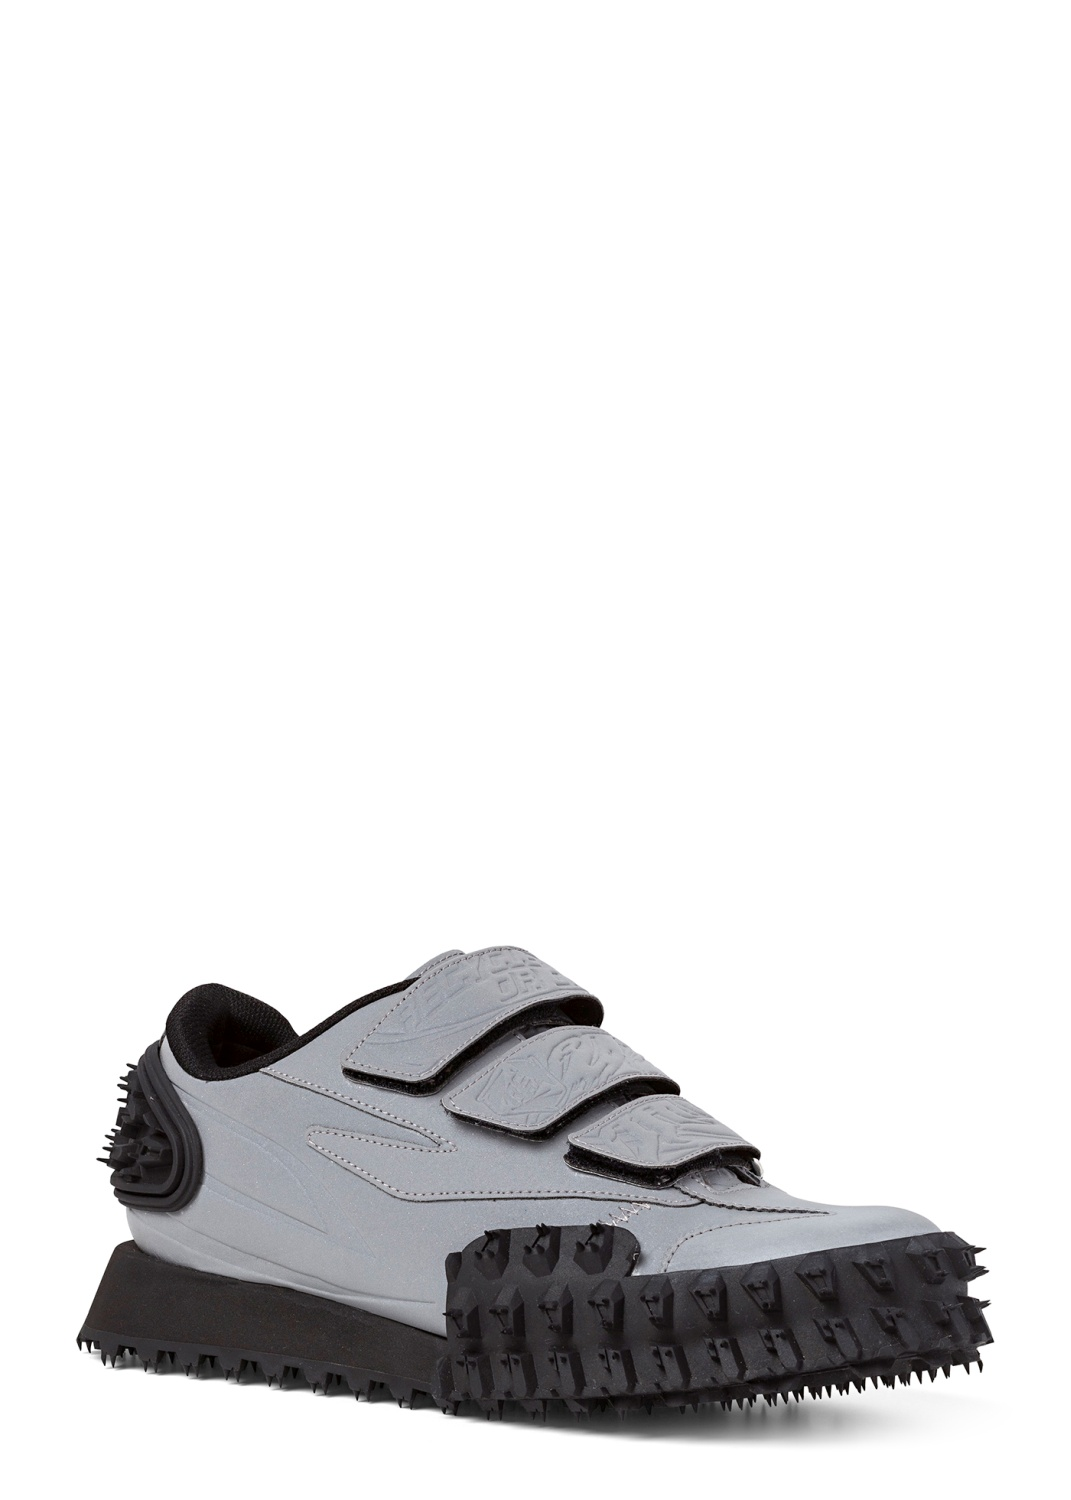 LOW-TOP SNEAKER WITH CHUNKY SOLE image number 1